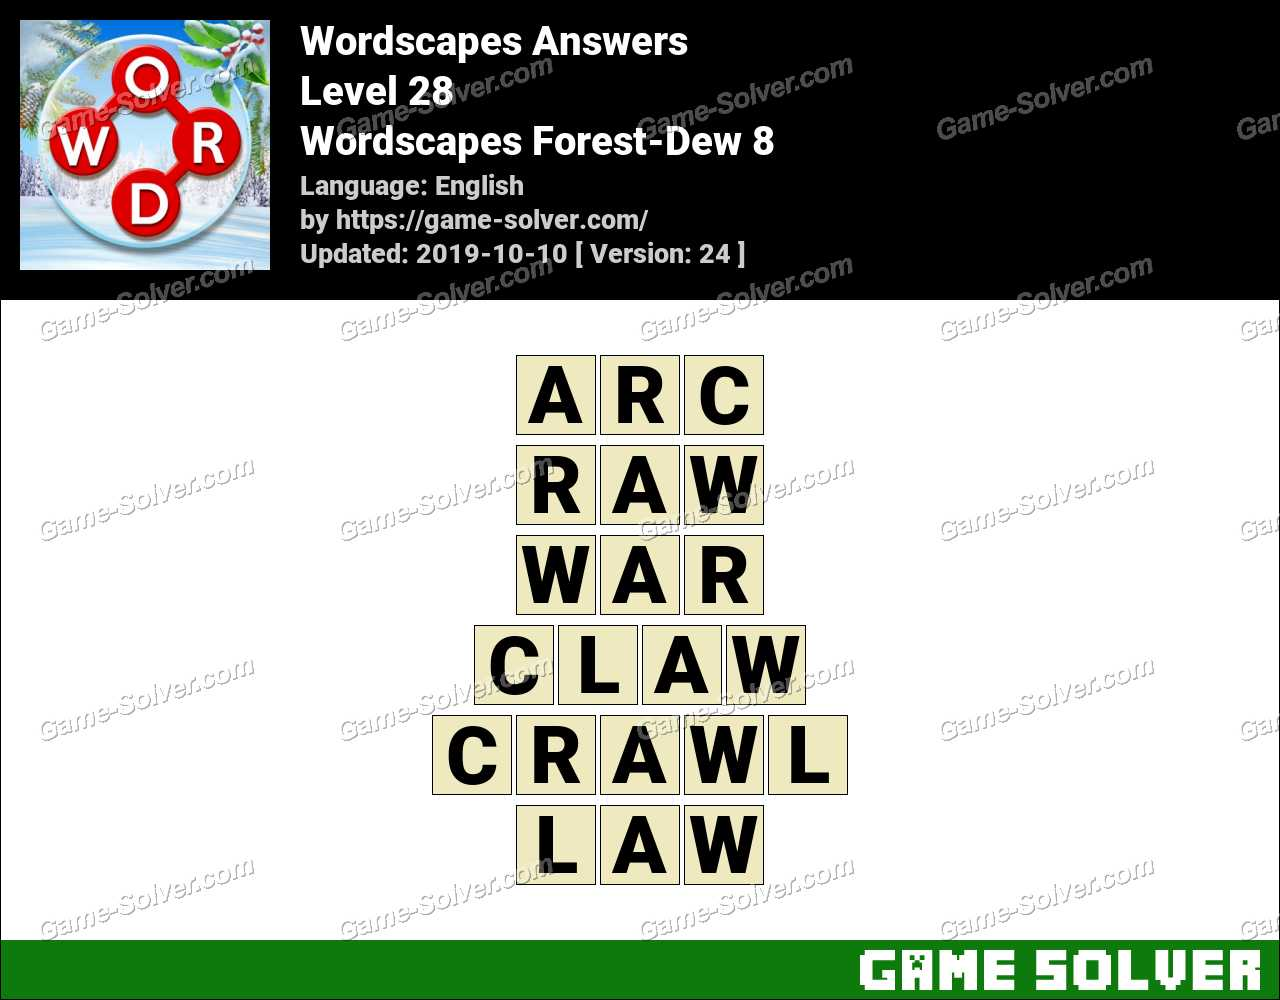 Wordscapes Forest-Dew 8 Answers